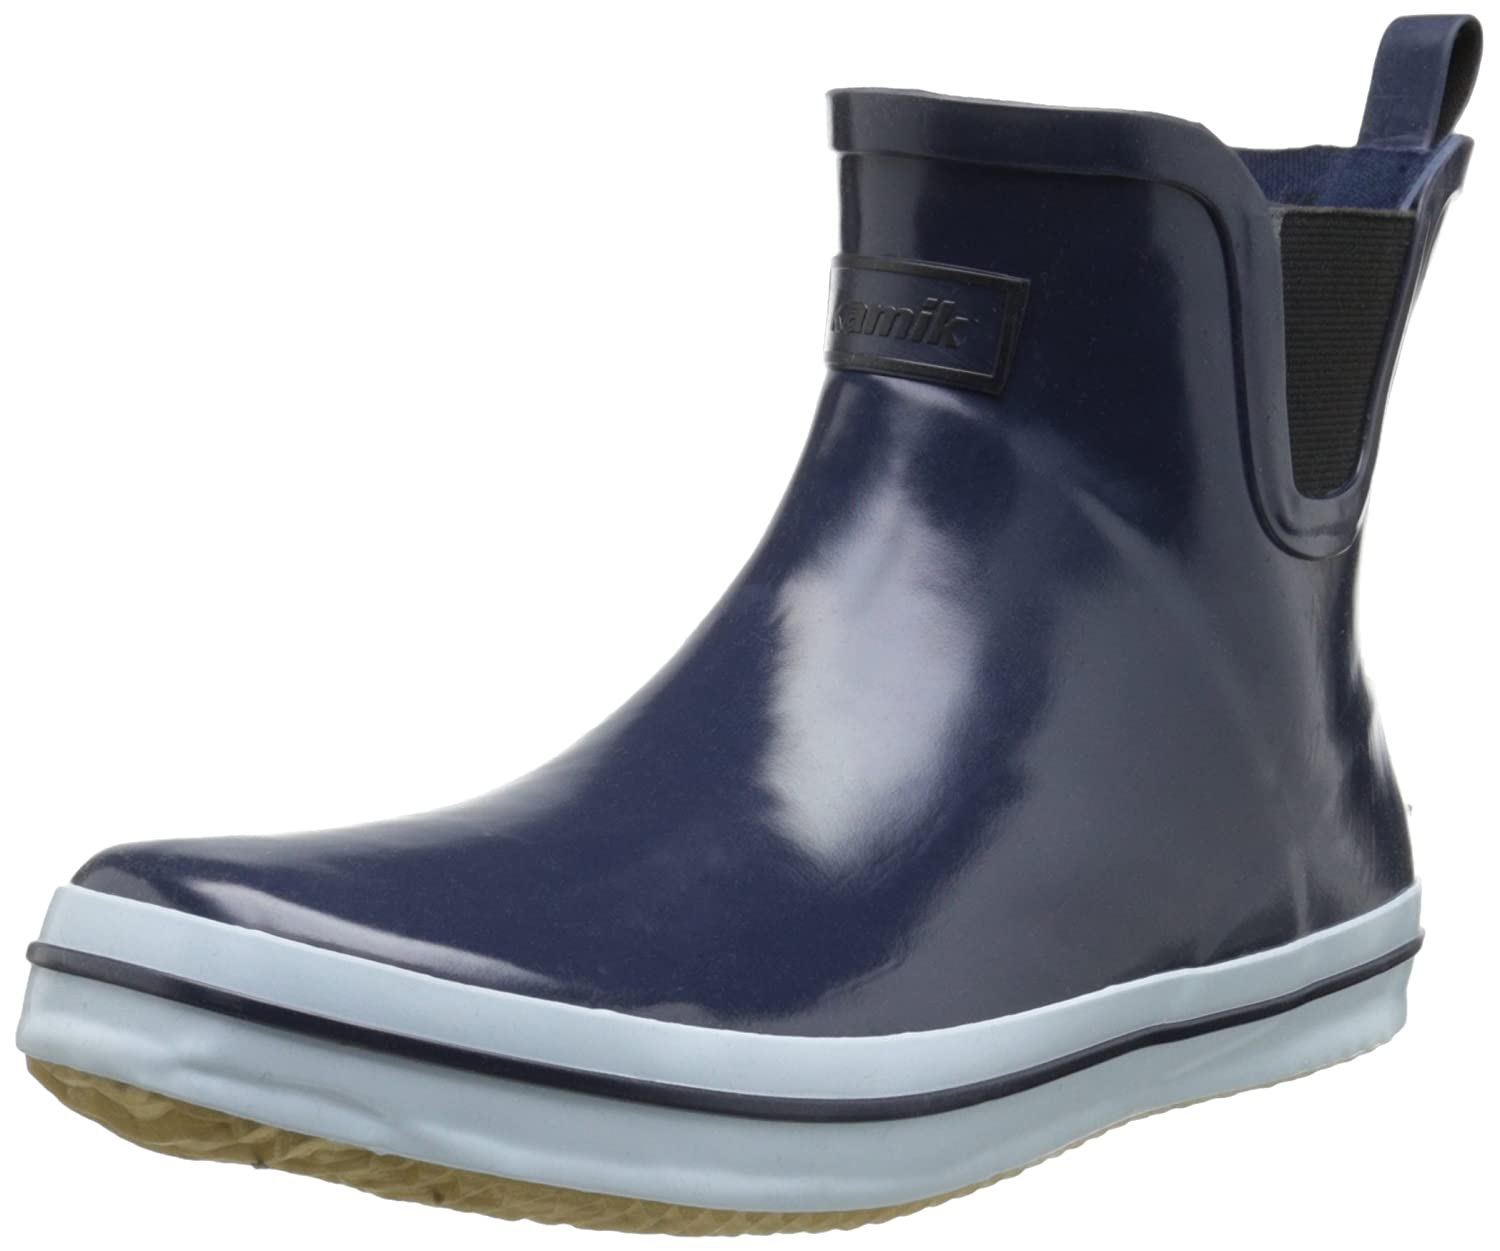 Kamik Women's Sharon Ankle-High Rain Boot B00M076WO4 10 B(M) US|Navy